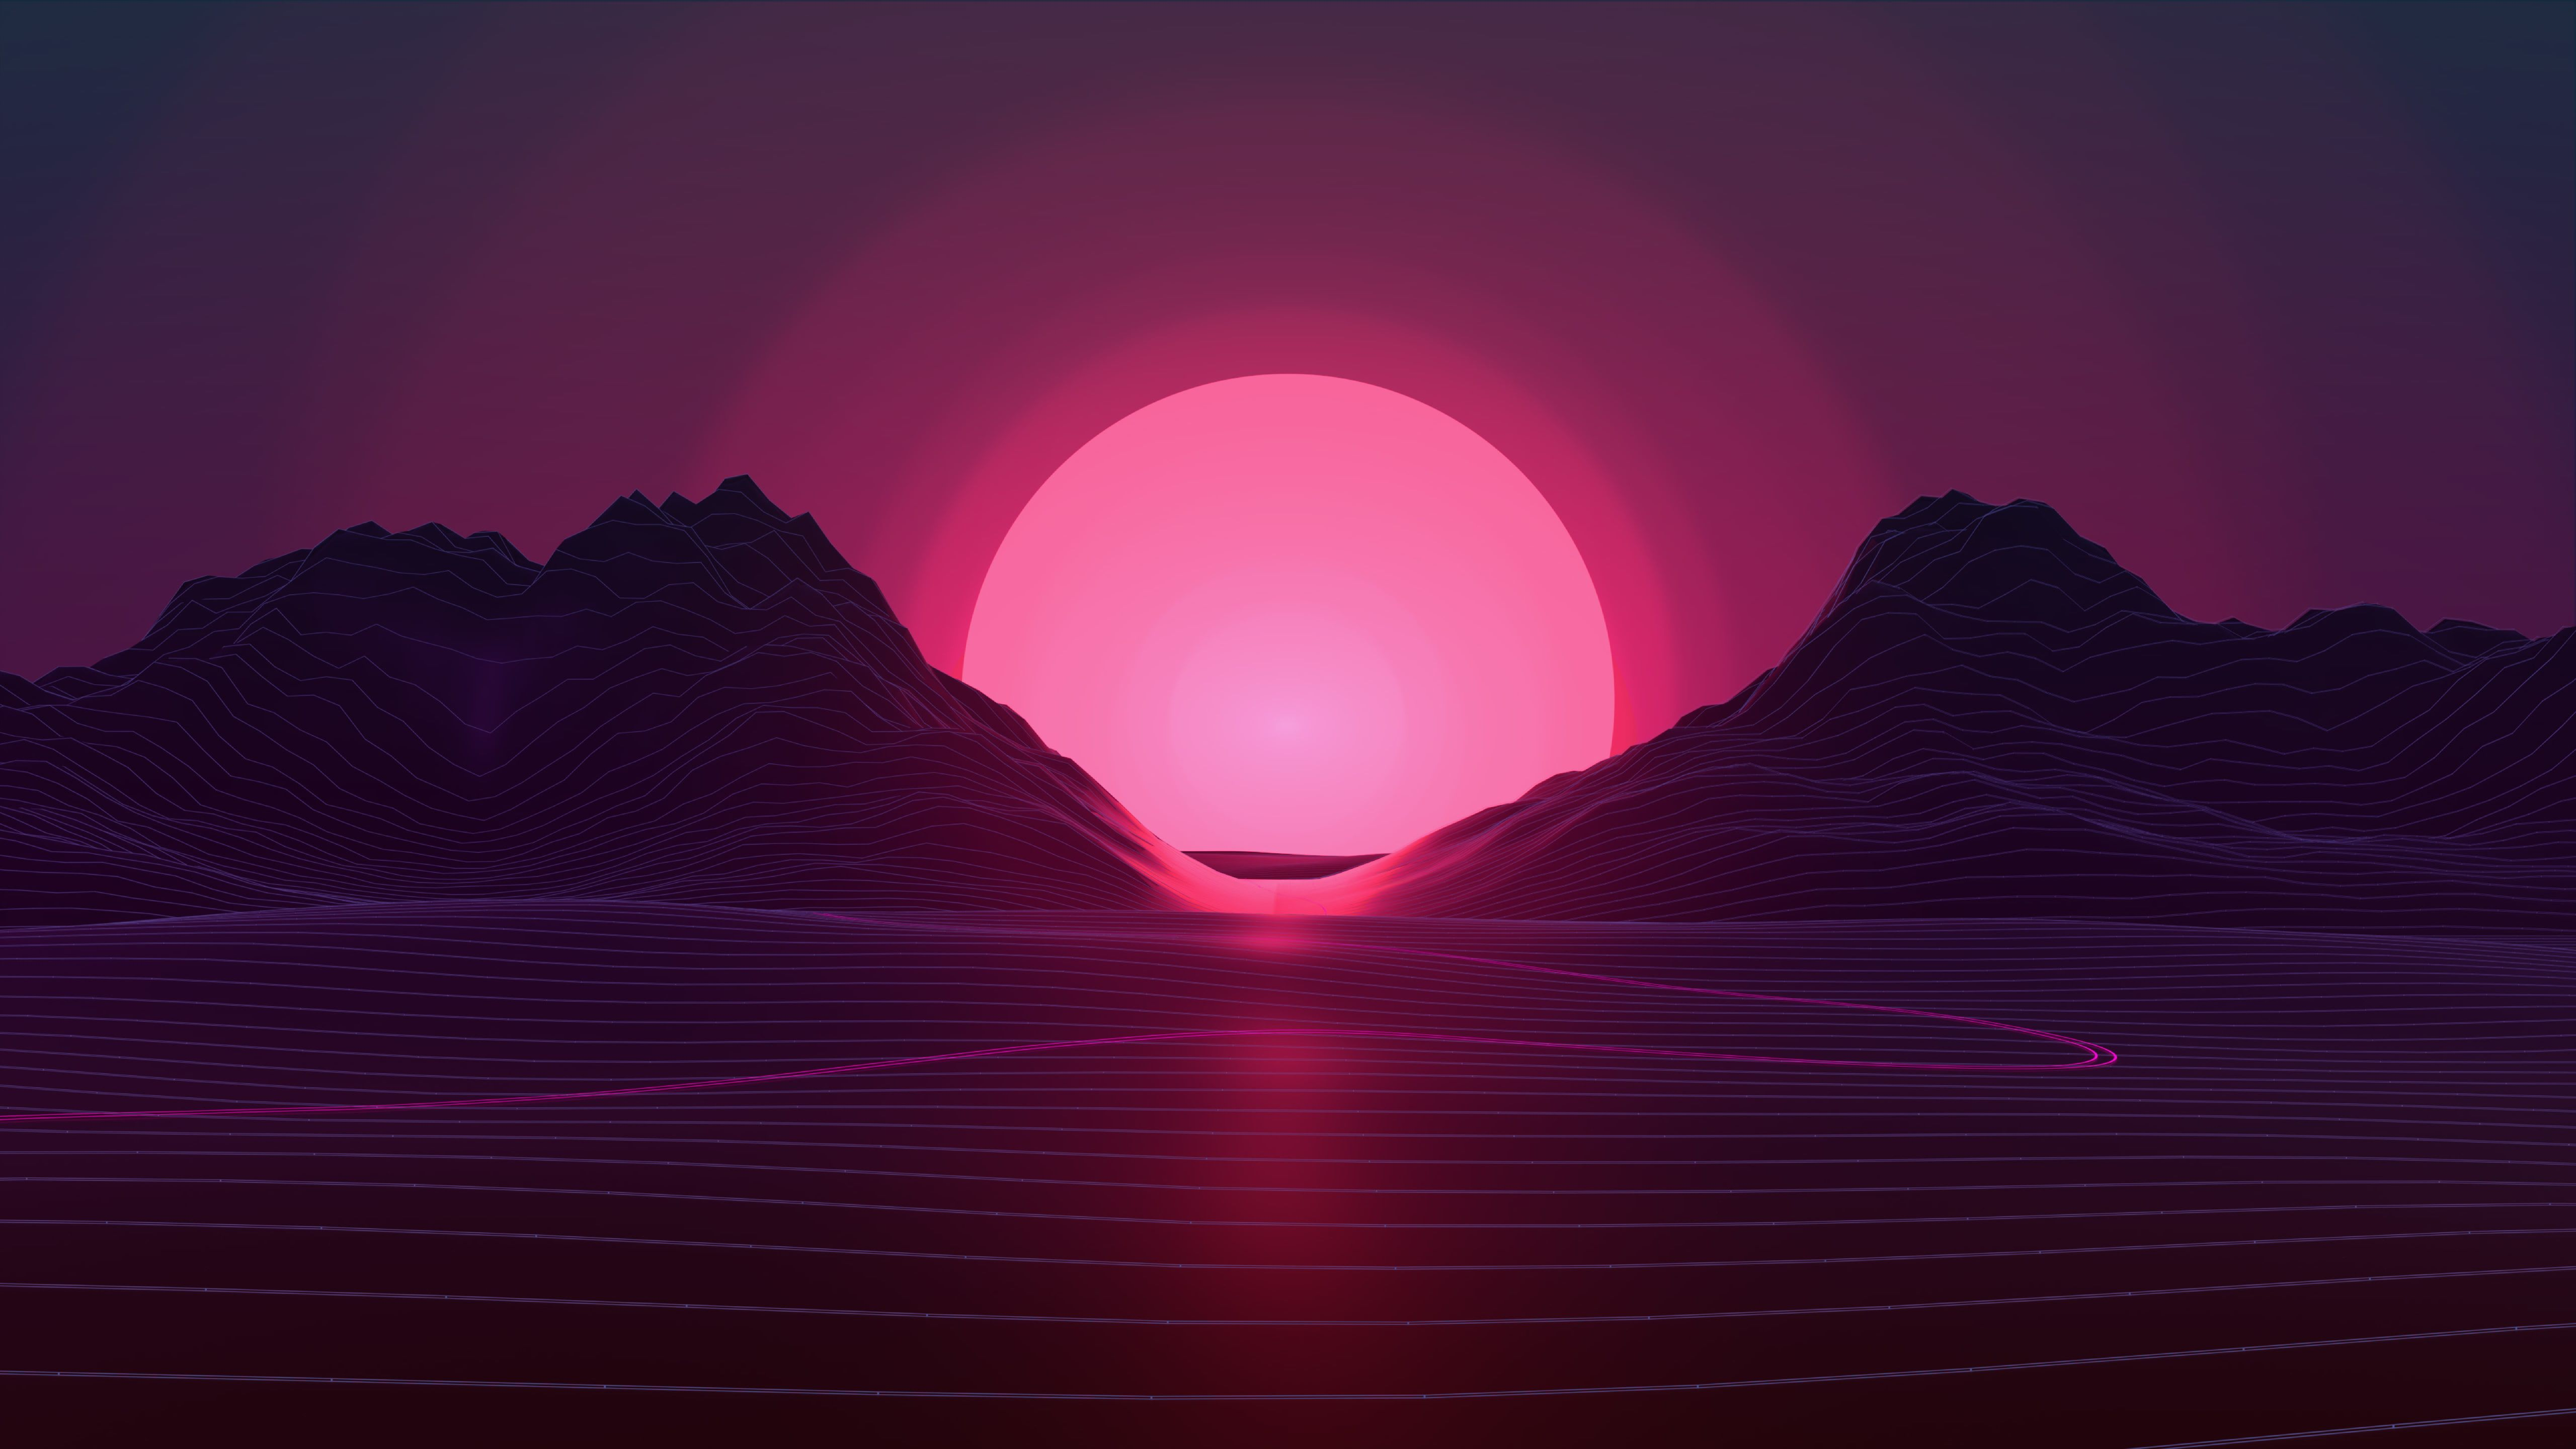 A collection of the top 43 blackpink desktop wallpapers and backgrounds available for download for free. #retrowave #mountains #purple #sunrise #sunset purple ...